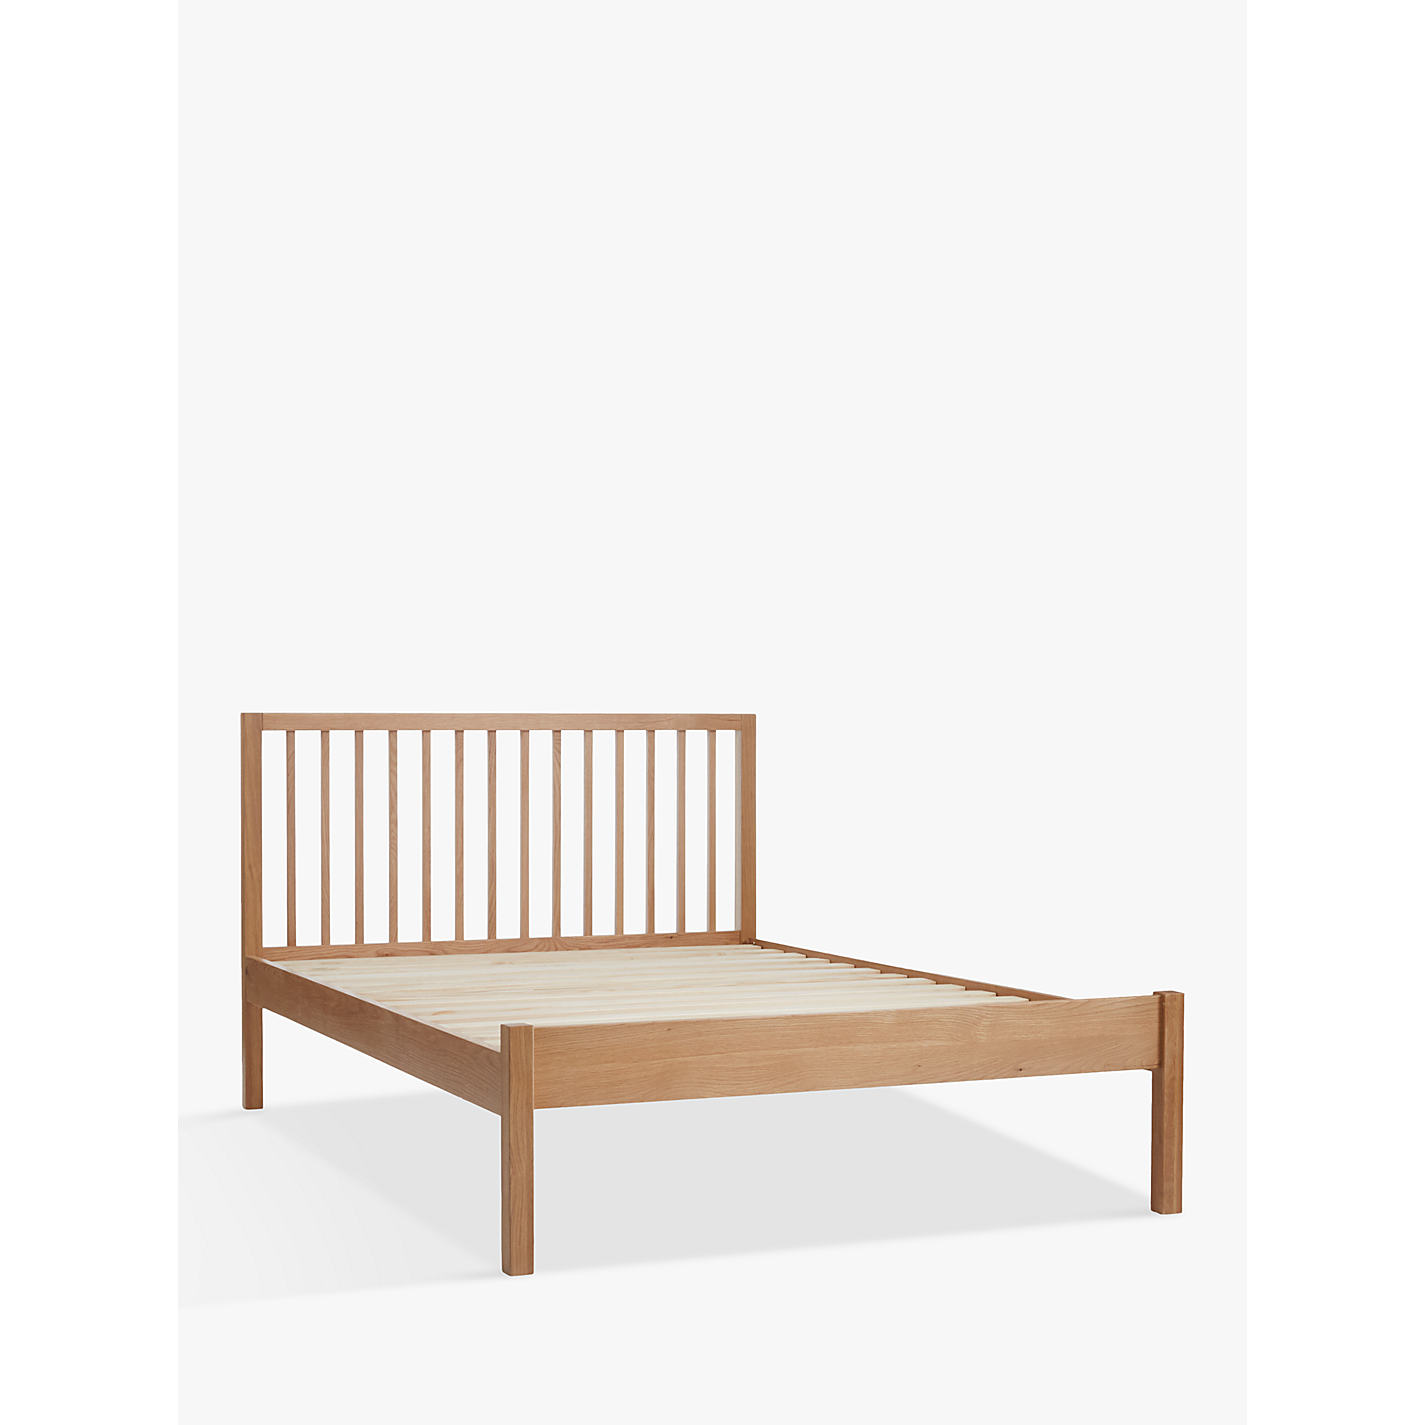 Bed Pictures buy john lewis morgan bed frame, double, oak | john lewis